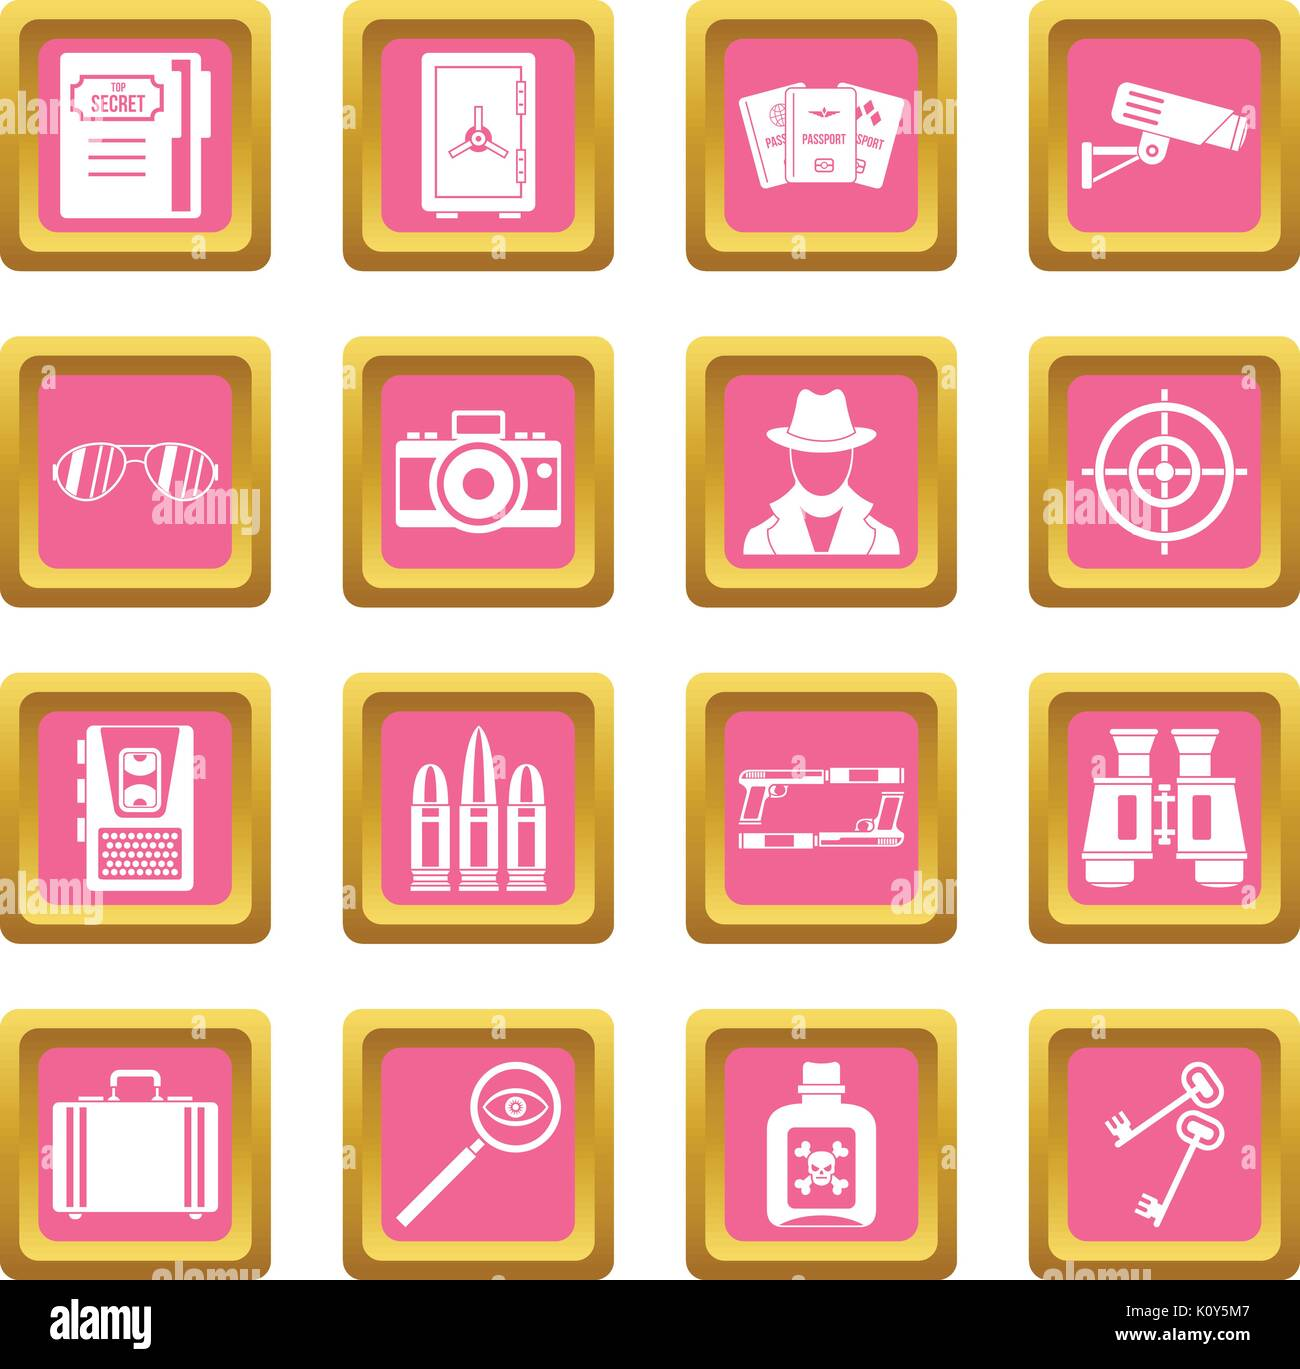 Spy tools icons pink - Stock Image